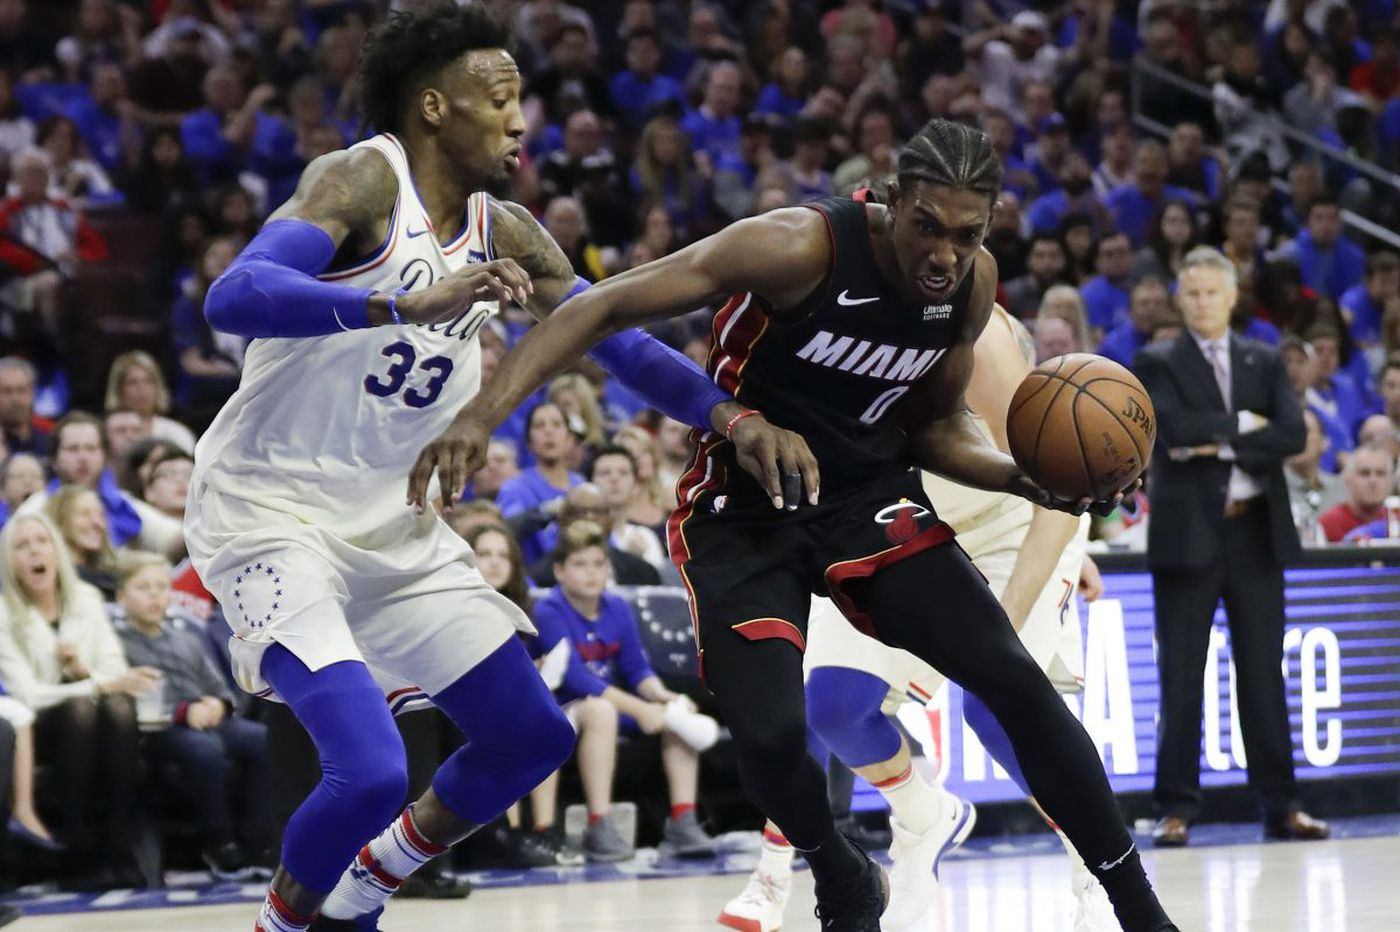 Robert Covington's defense key in Sixers' Game 1 win over the Heat in NBA Playoffs